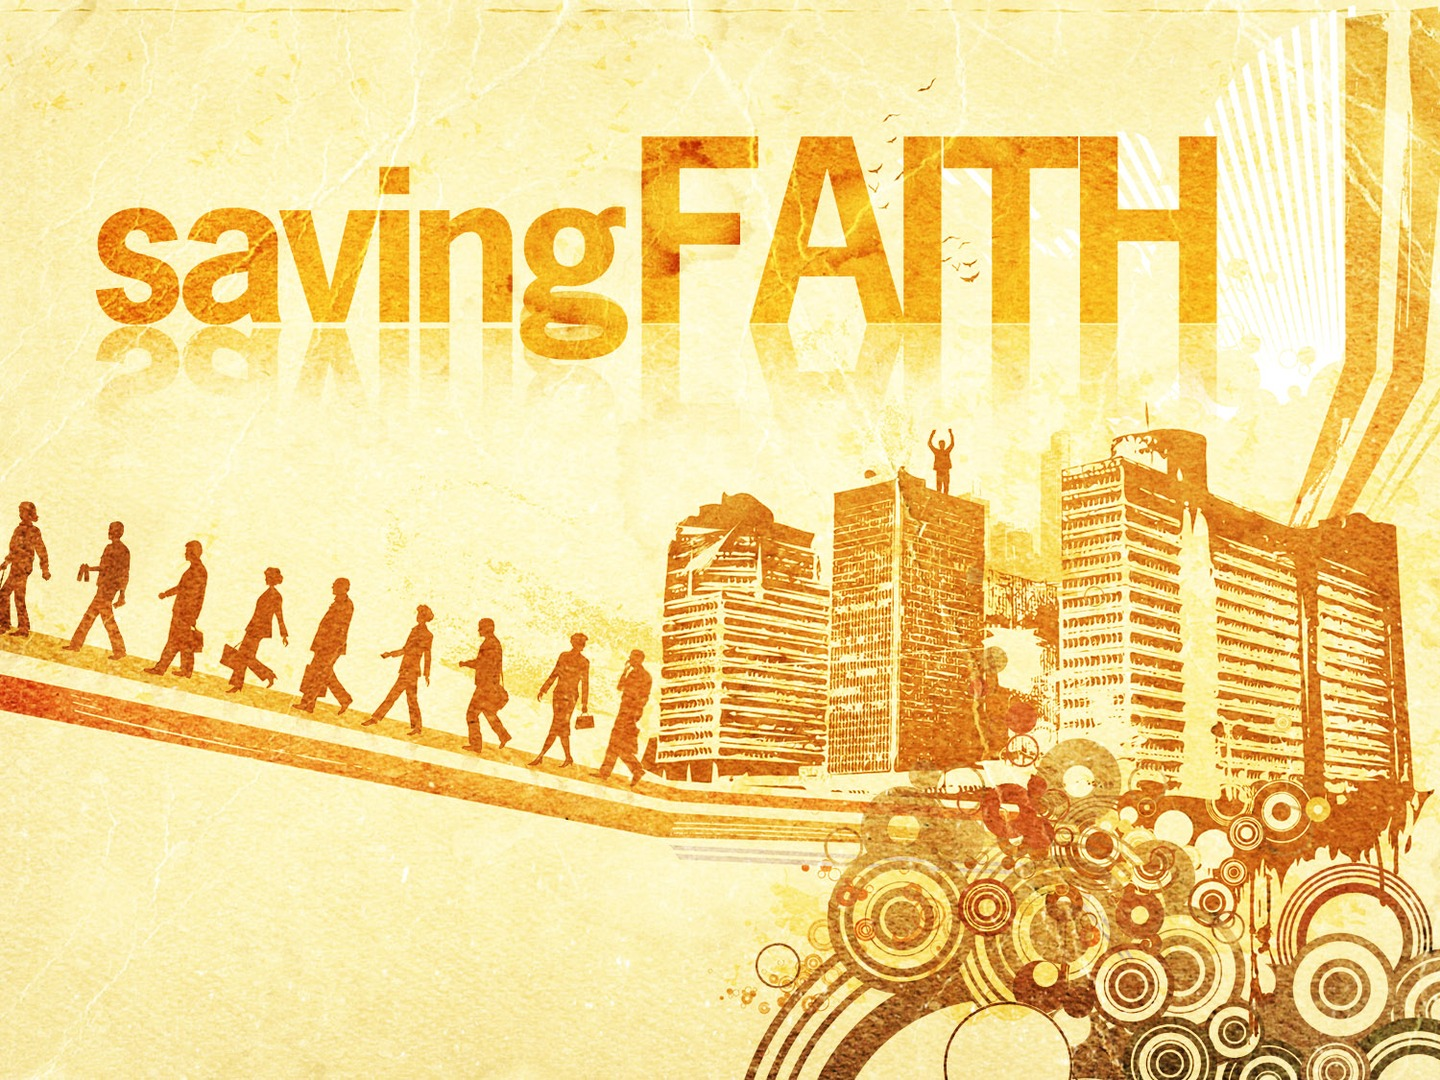 saving_faith-title-2-still-4x3.jpg